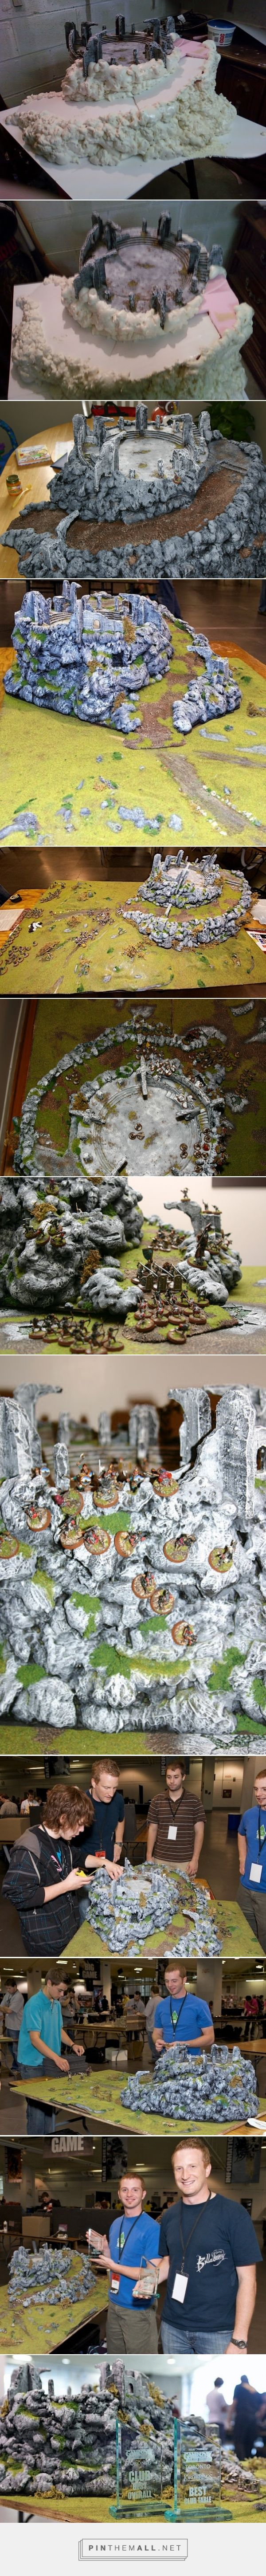 Terrain Projects - Looking Back to 2009 | Board Games, Minis and More | BoardGameGeek - created via http://pinthemall.net